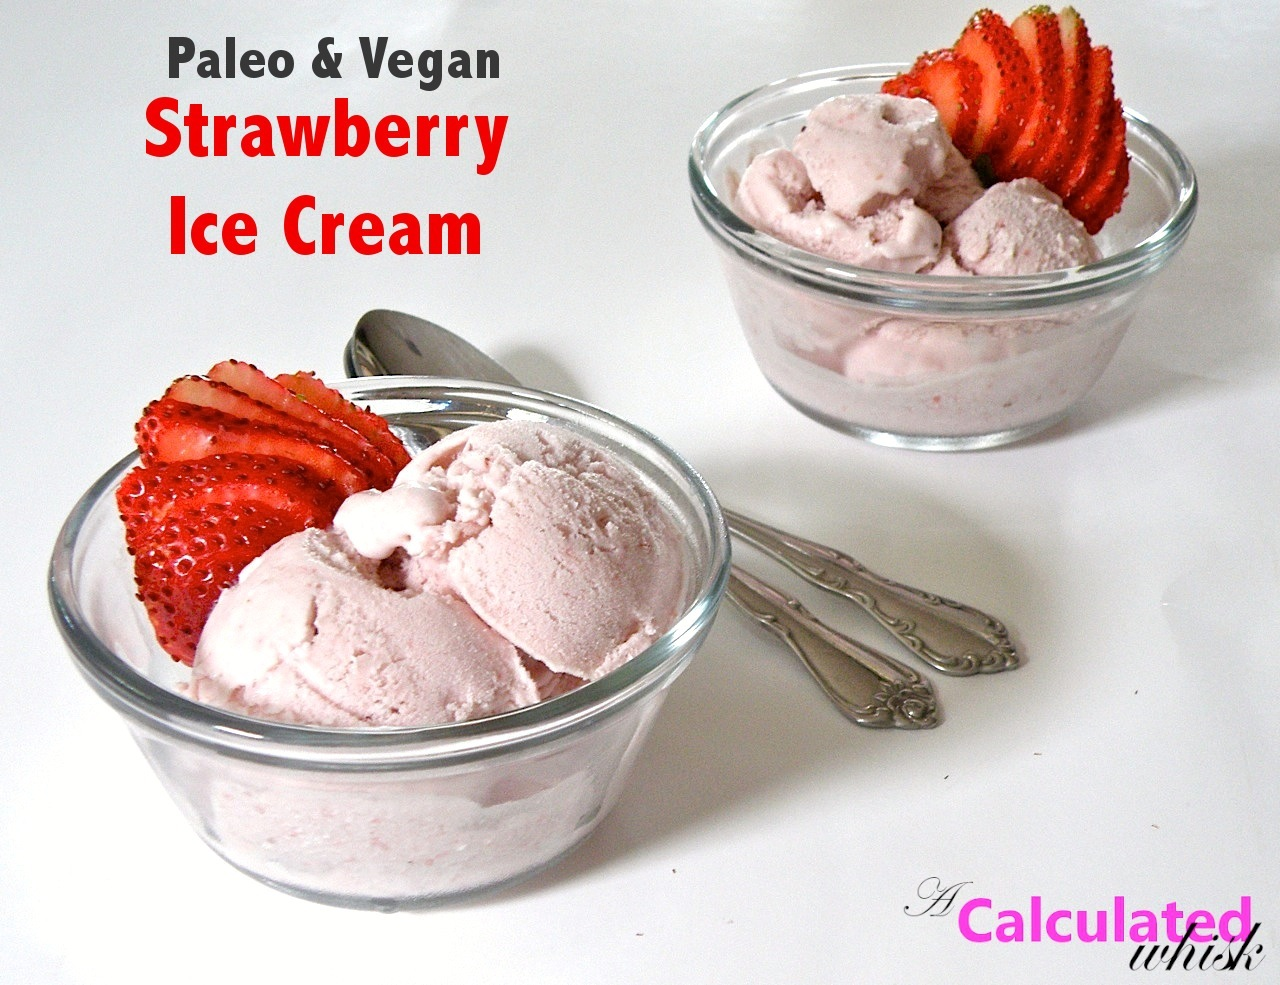 ... strawberry ice cream fettle vegan vegan strawberry banana ice cream